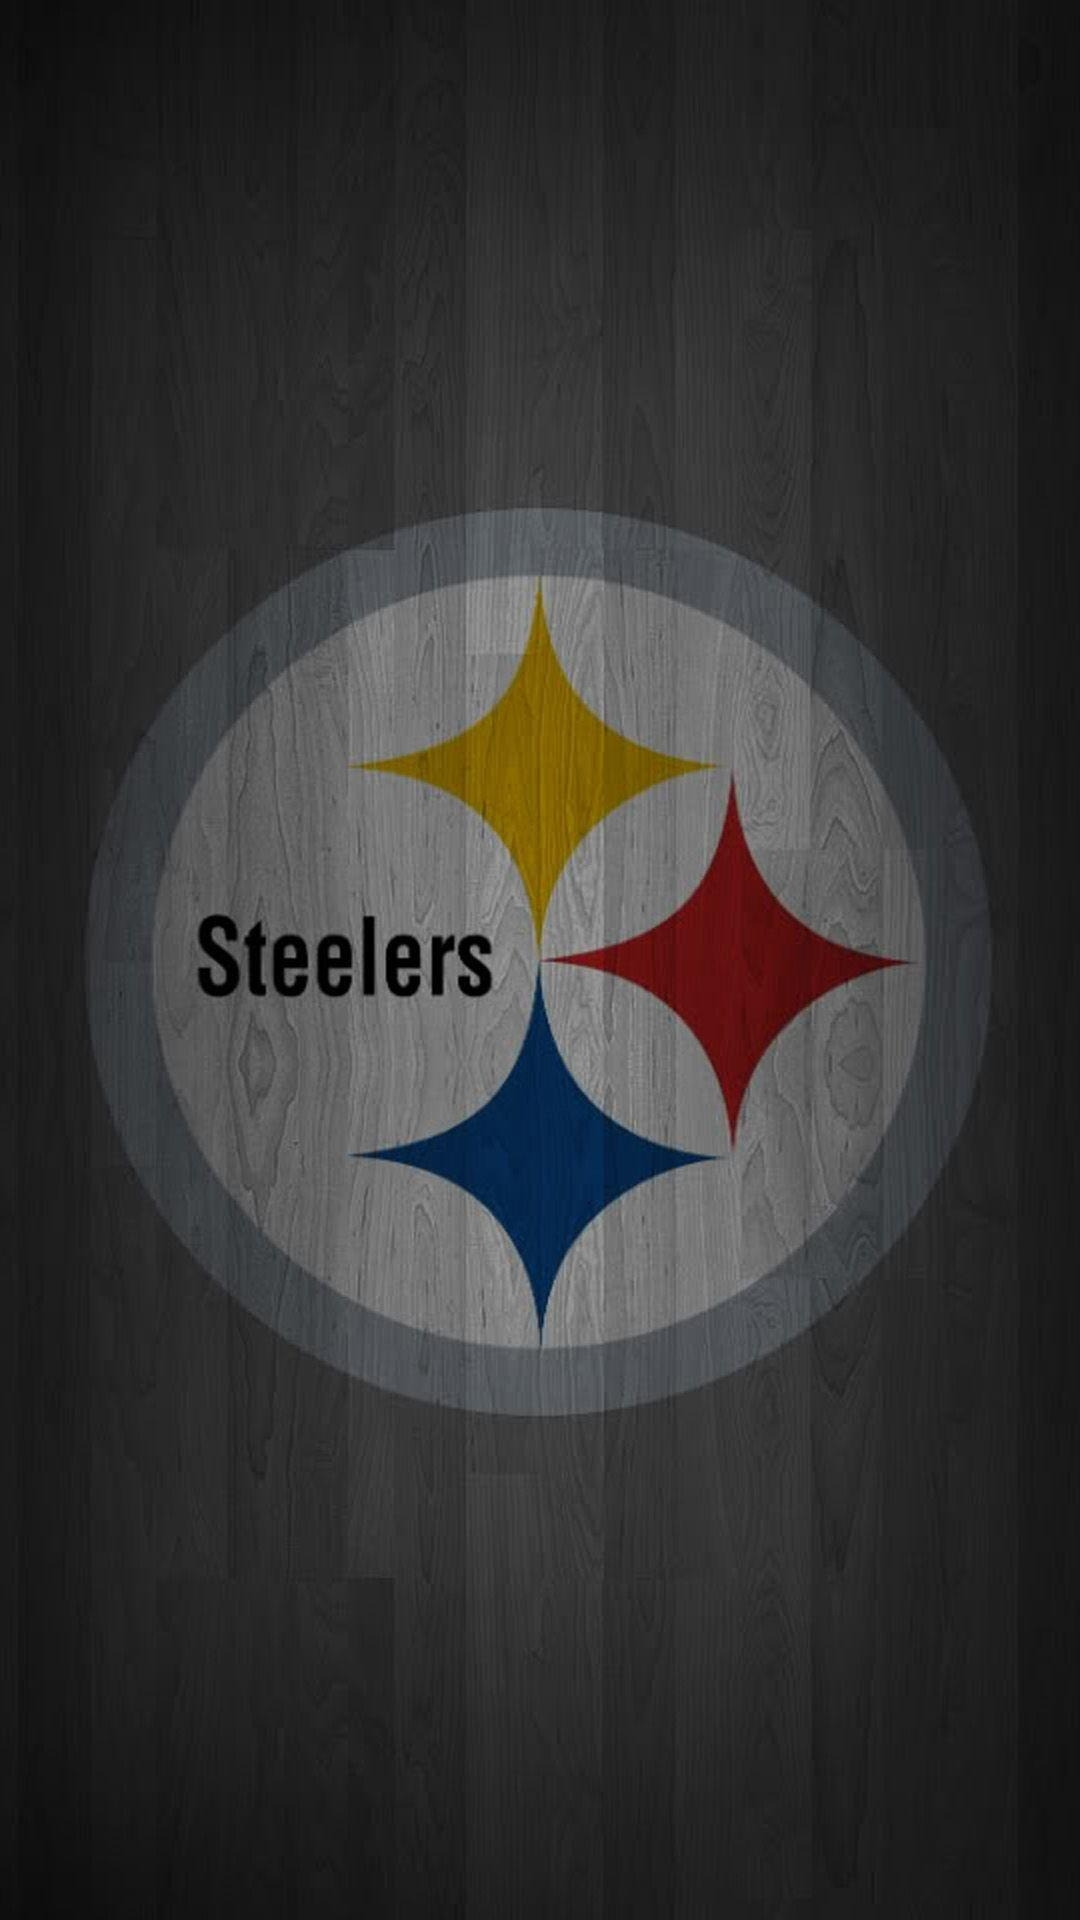 steelers wallpapers 2016 - wallpaper cave